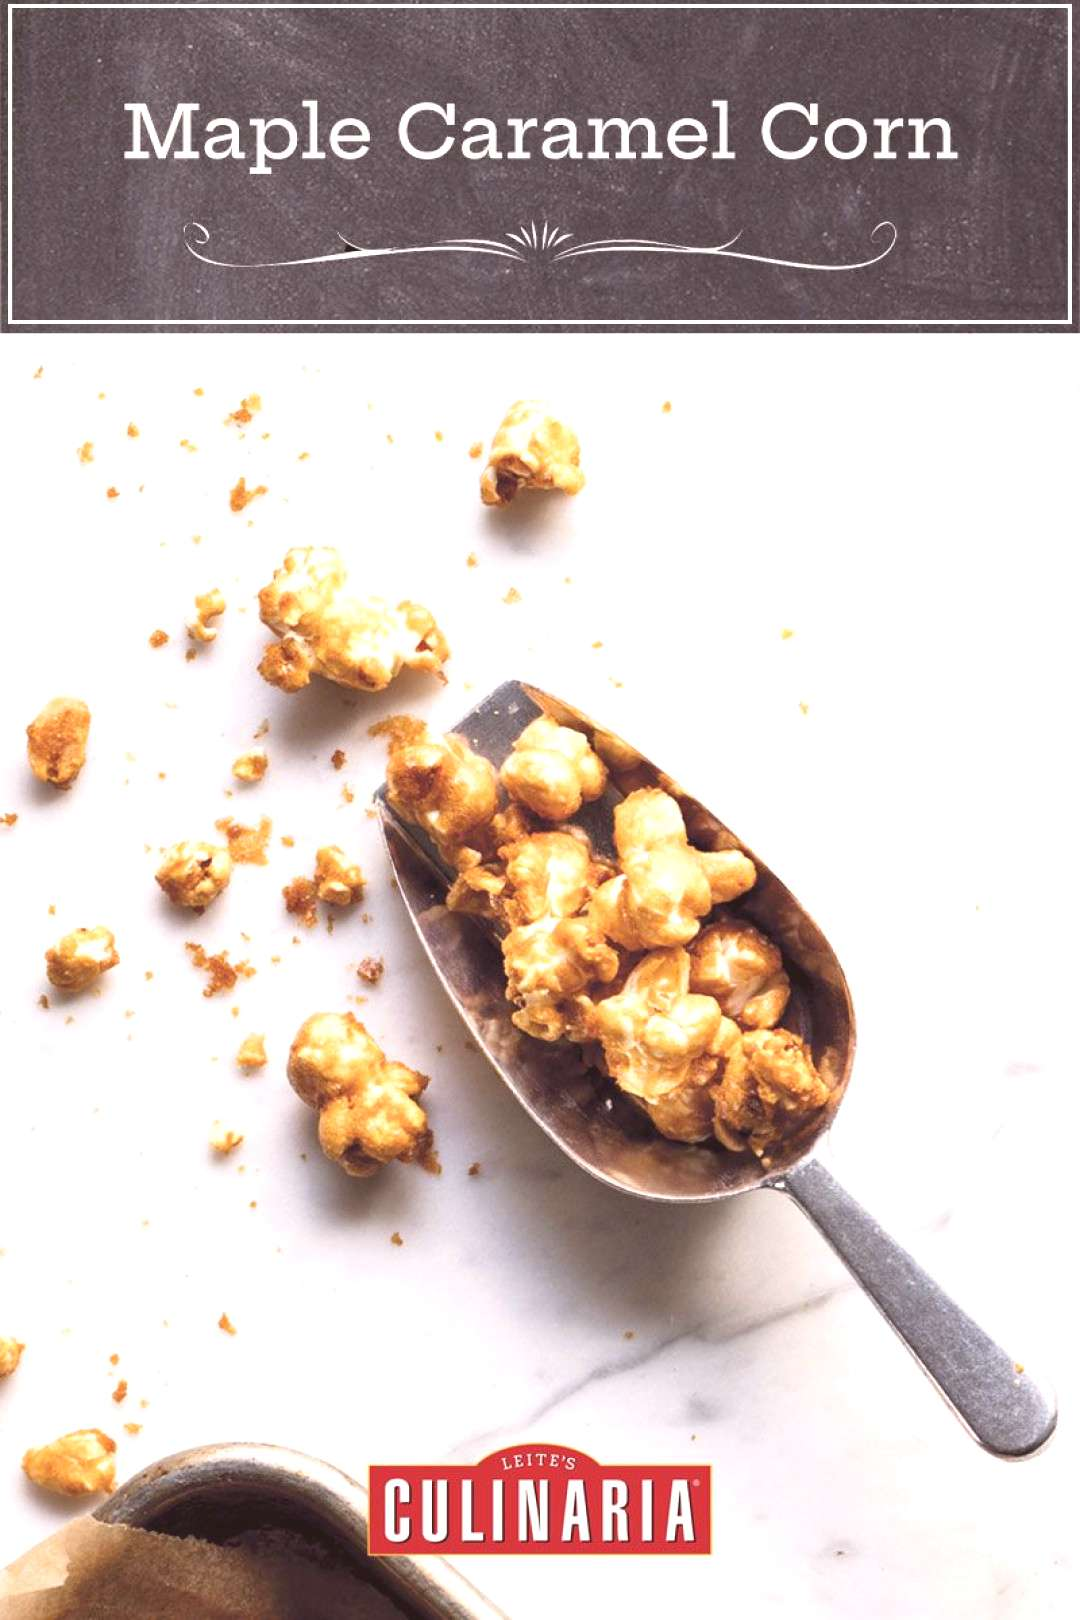 This maple caramel corn with peanuts is like Cracker Jack, except it tastes better and there's no p